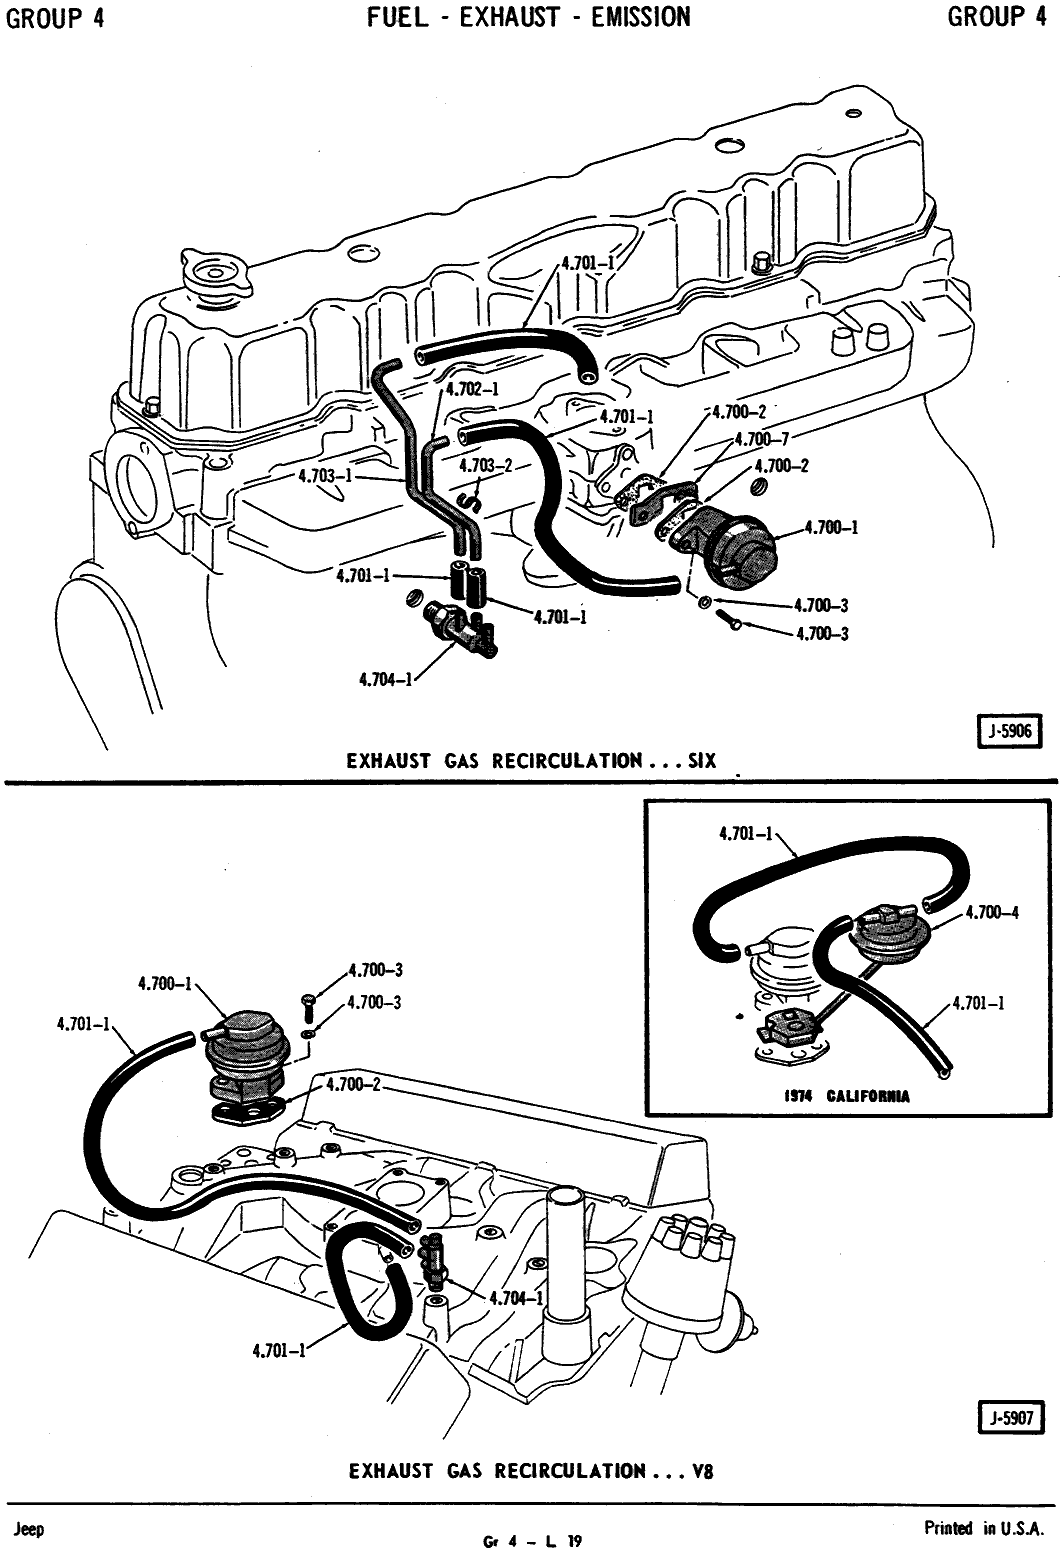 hight resolution of 83 cj7 engine diagram wiring diagram portal jeep cj heater diagram jeep cj engine diagram